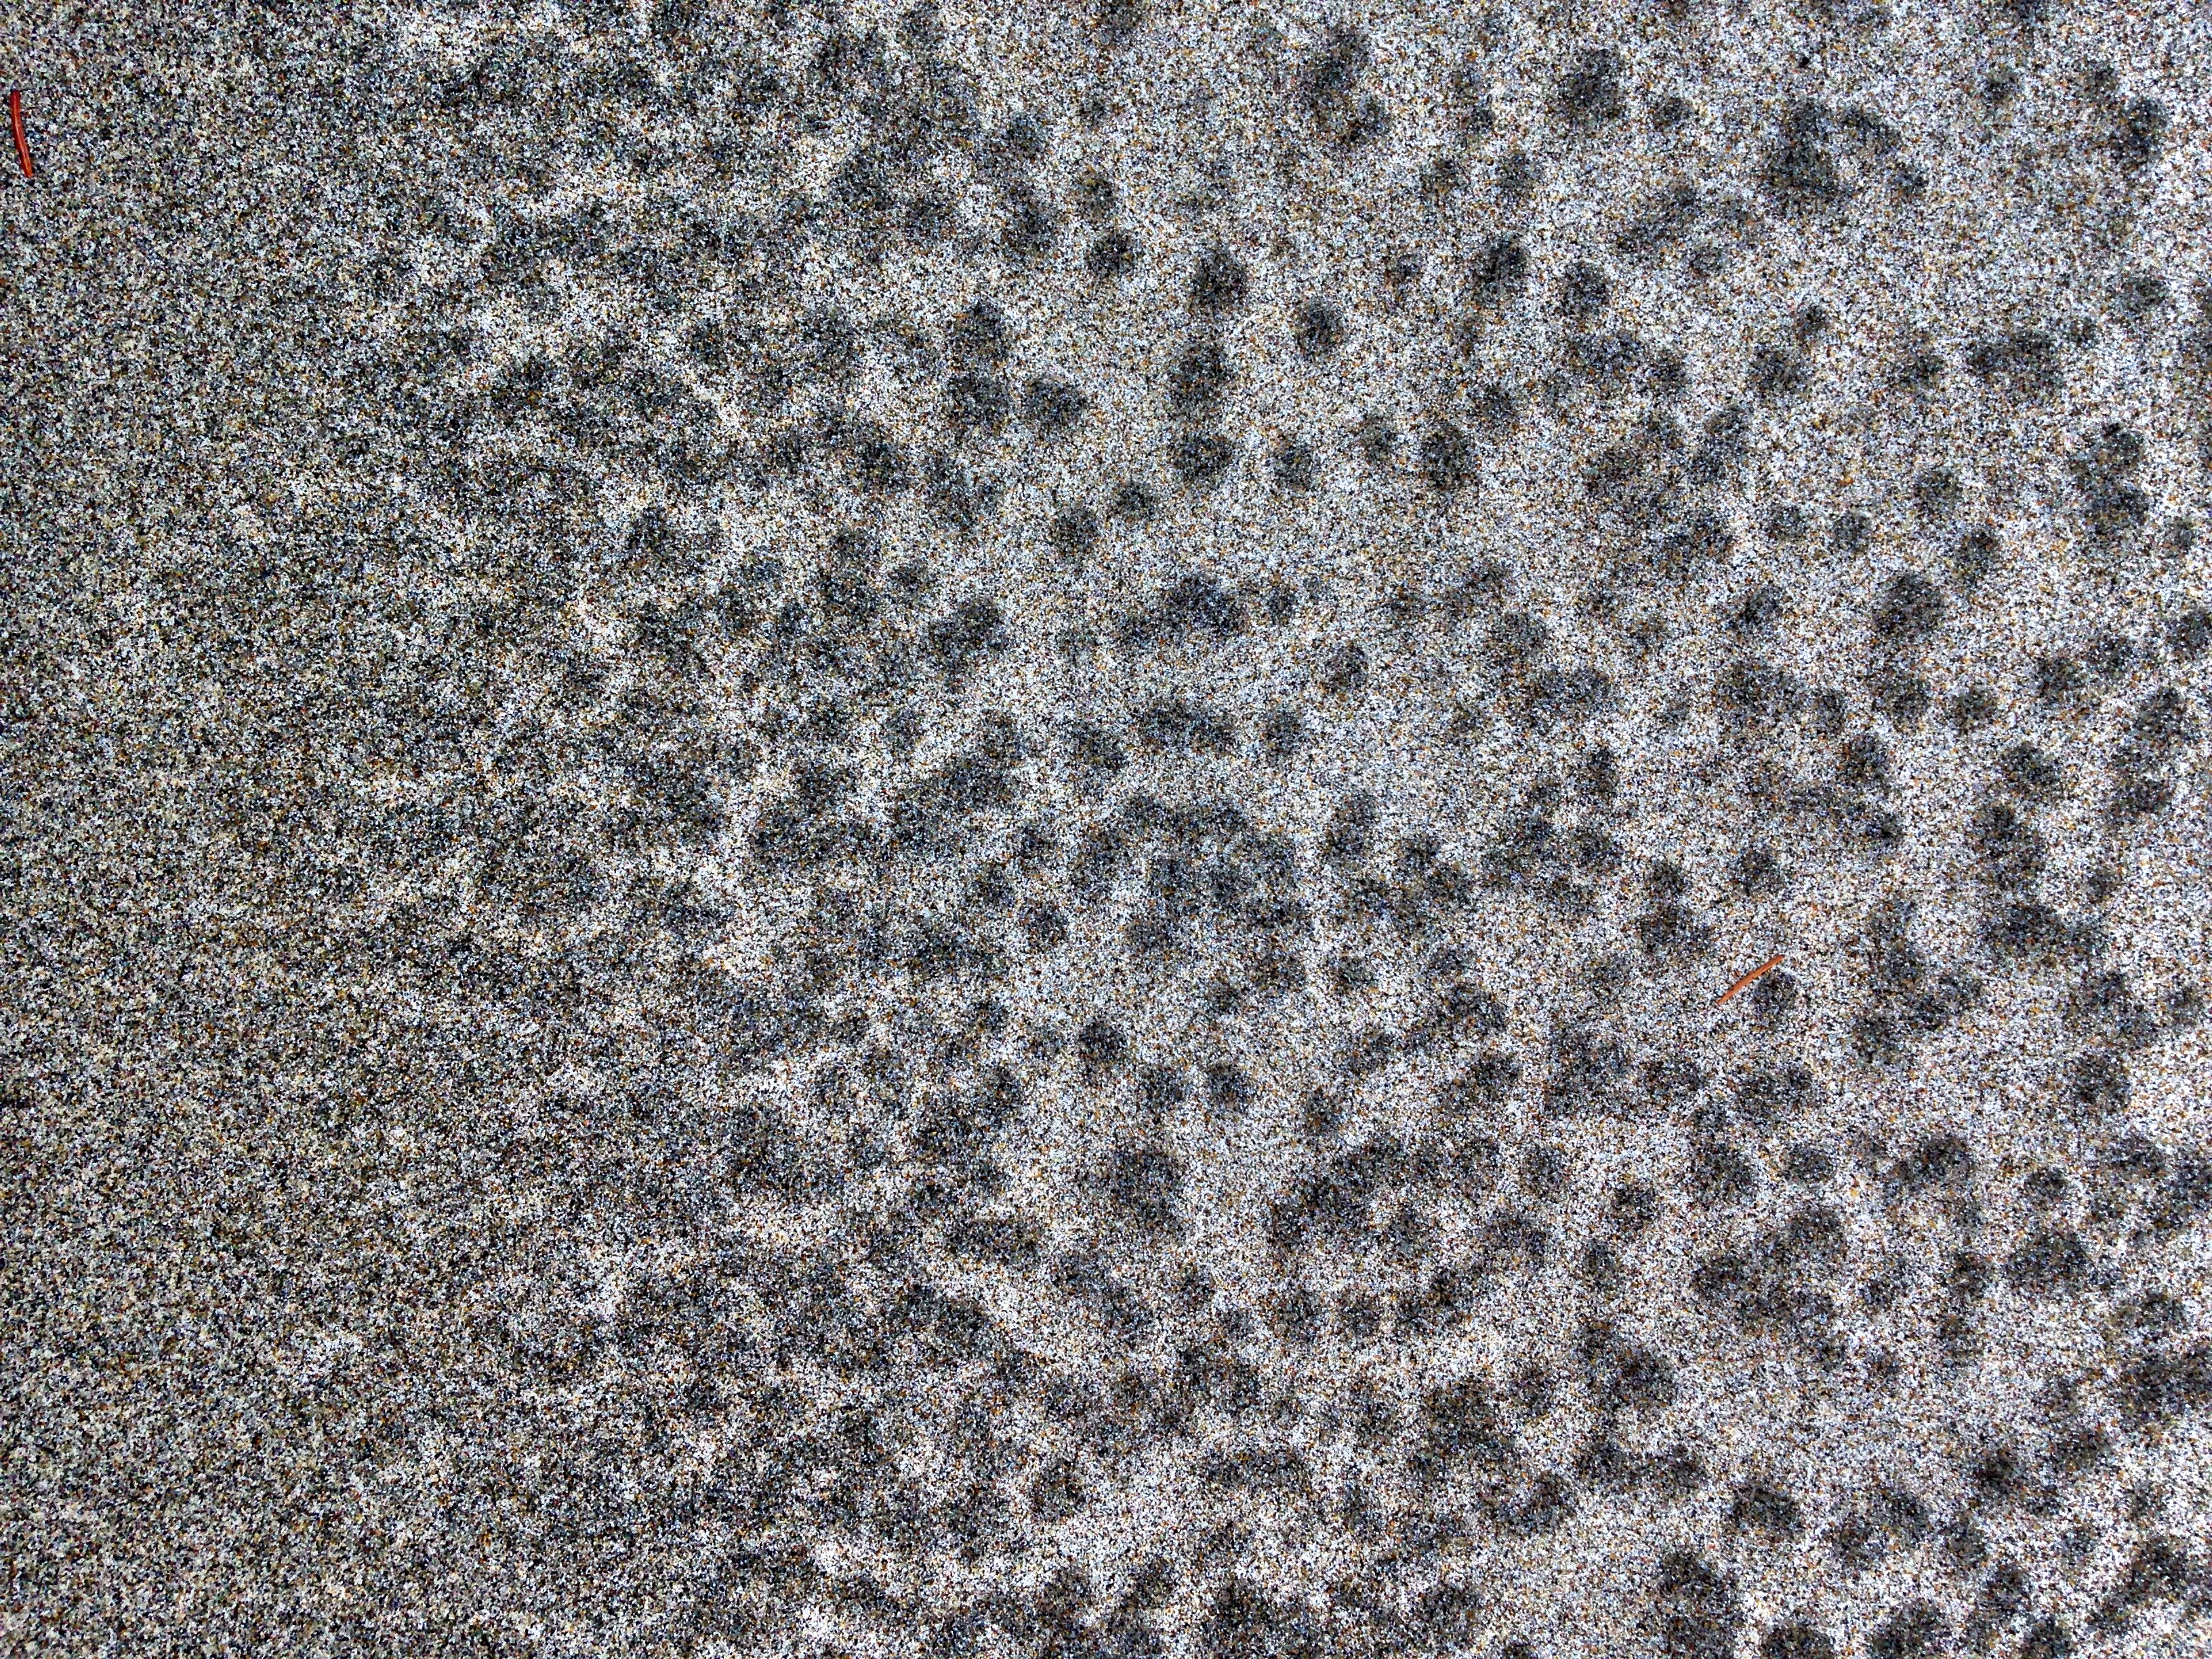 Stippled sand patterns on the Oregon coast